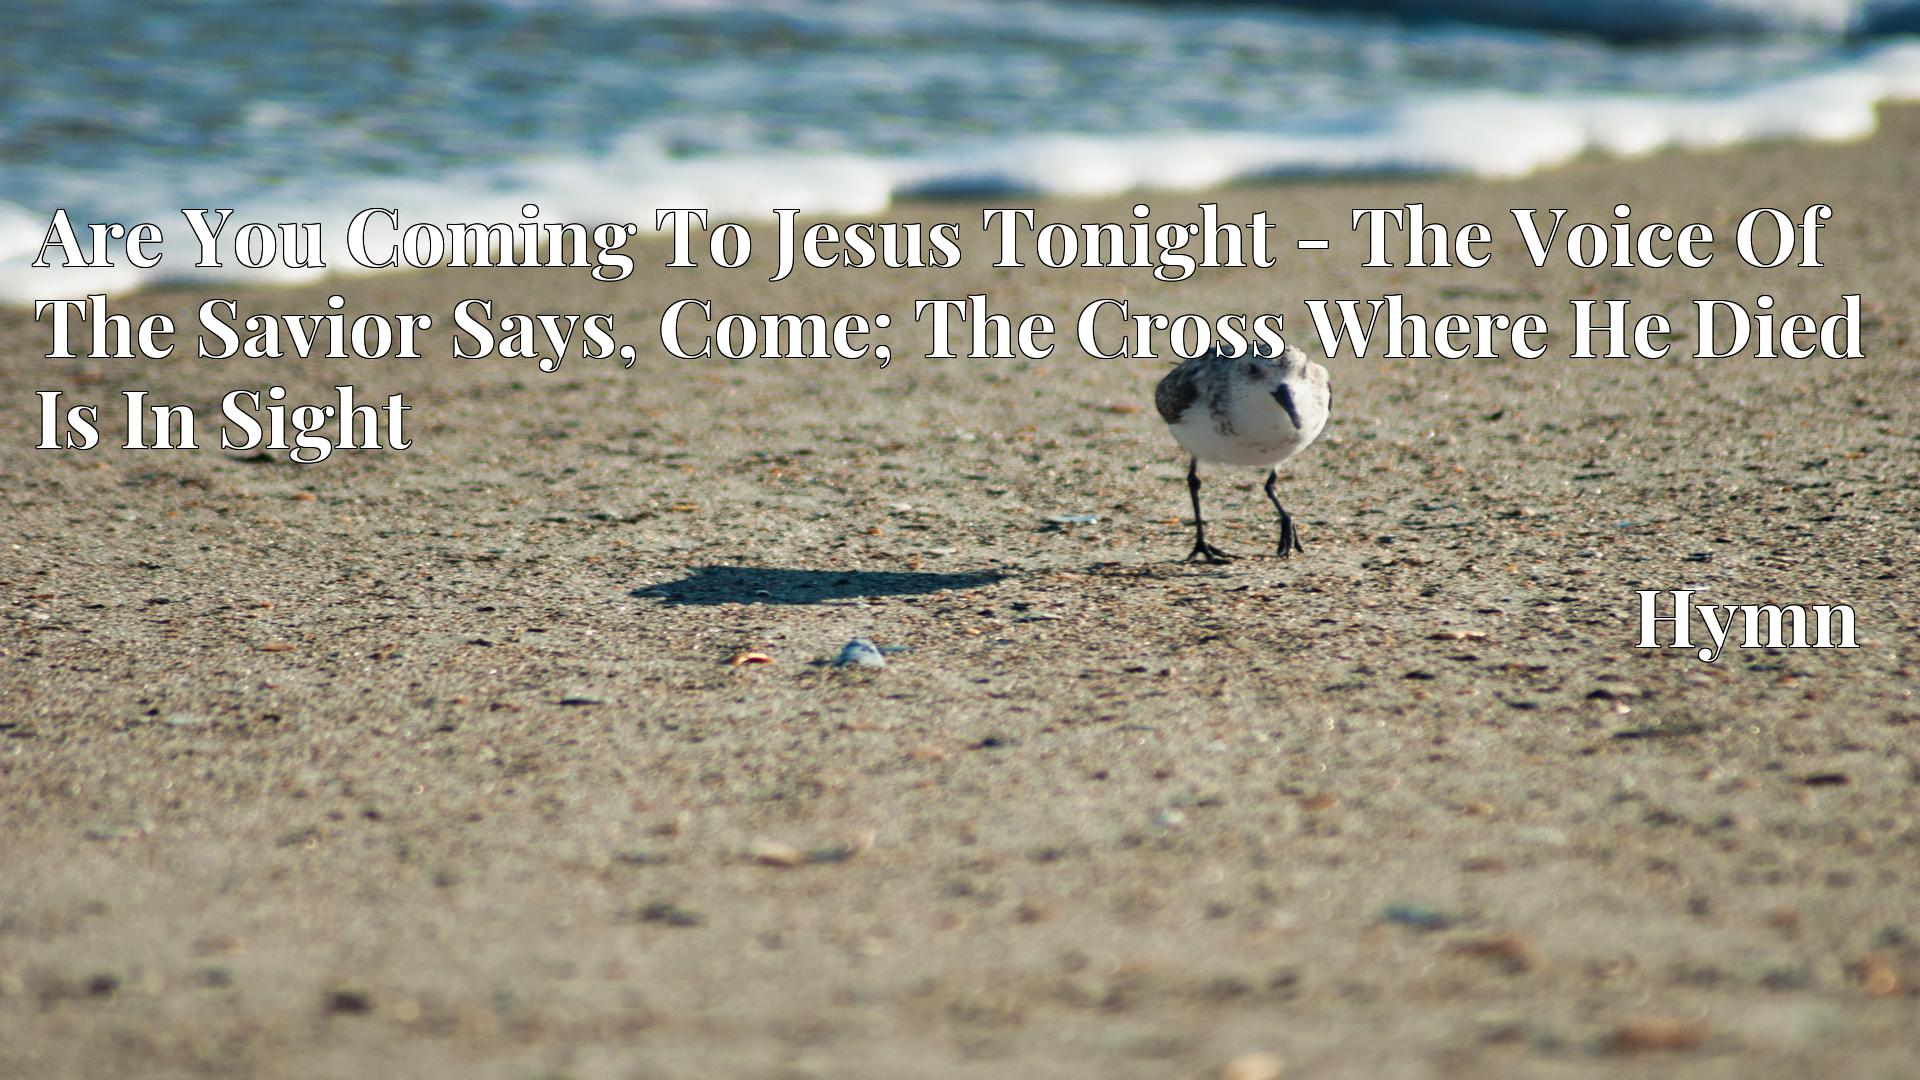 Are You Coming To Jesus Tonight - The Voice Of The Savior Says, Come; The Cross Where He Died Is In Sight - Hymn